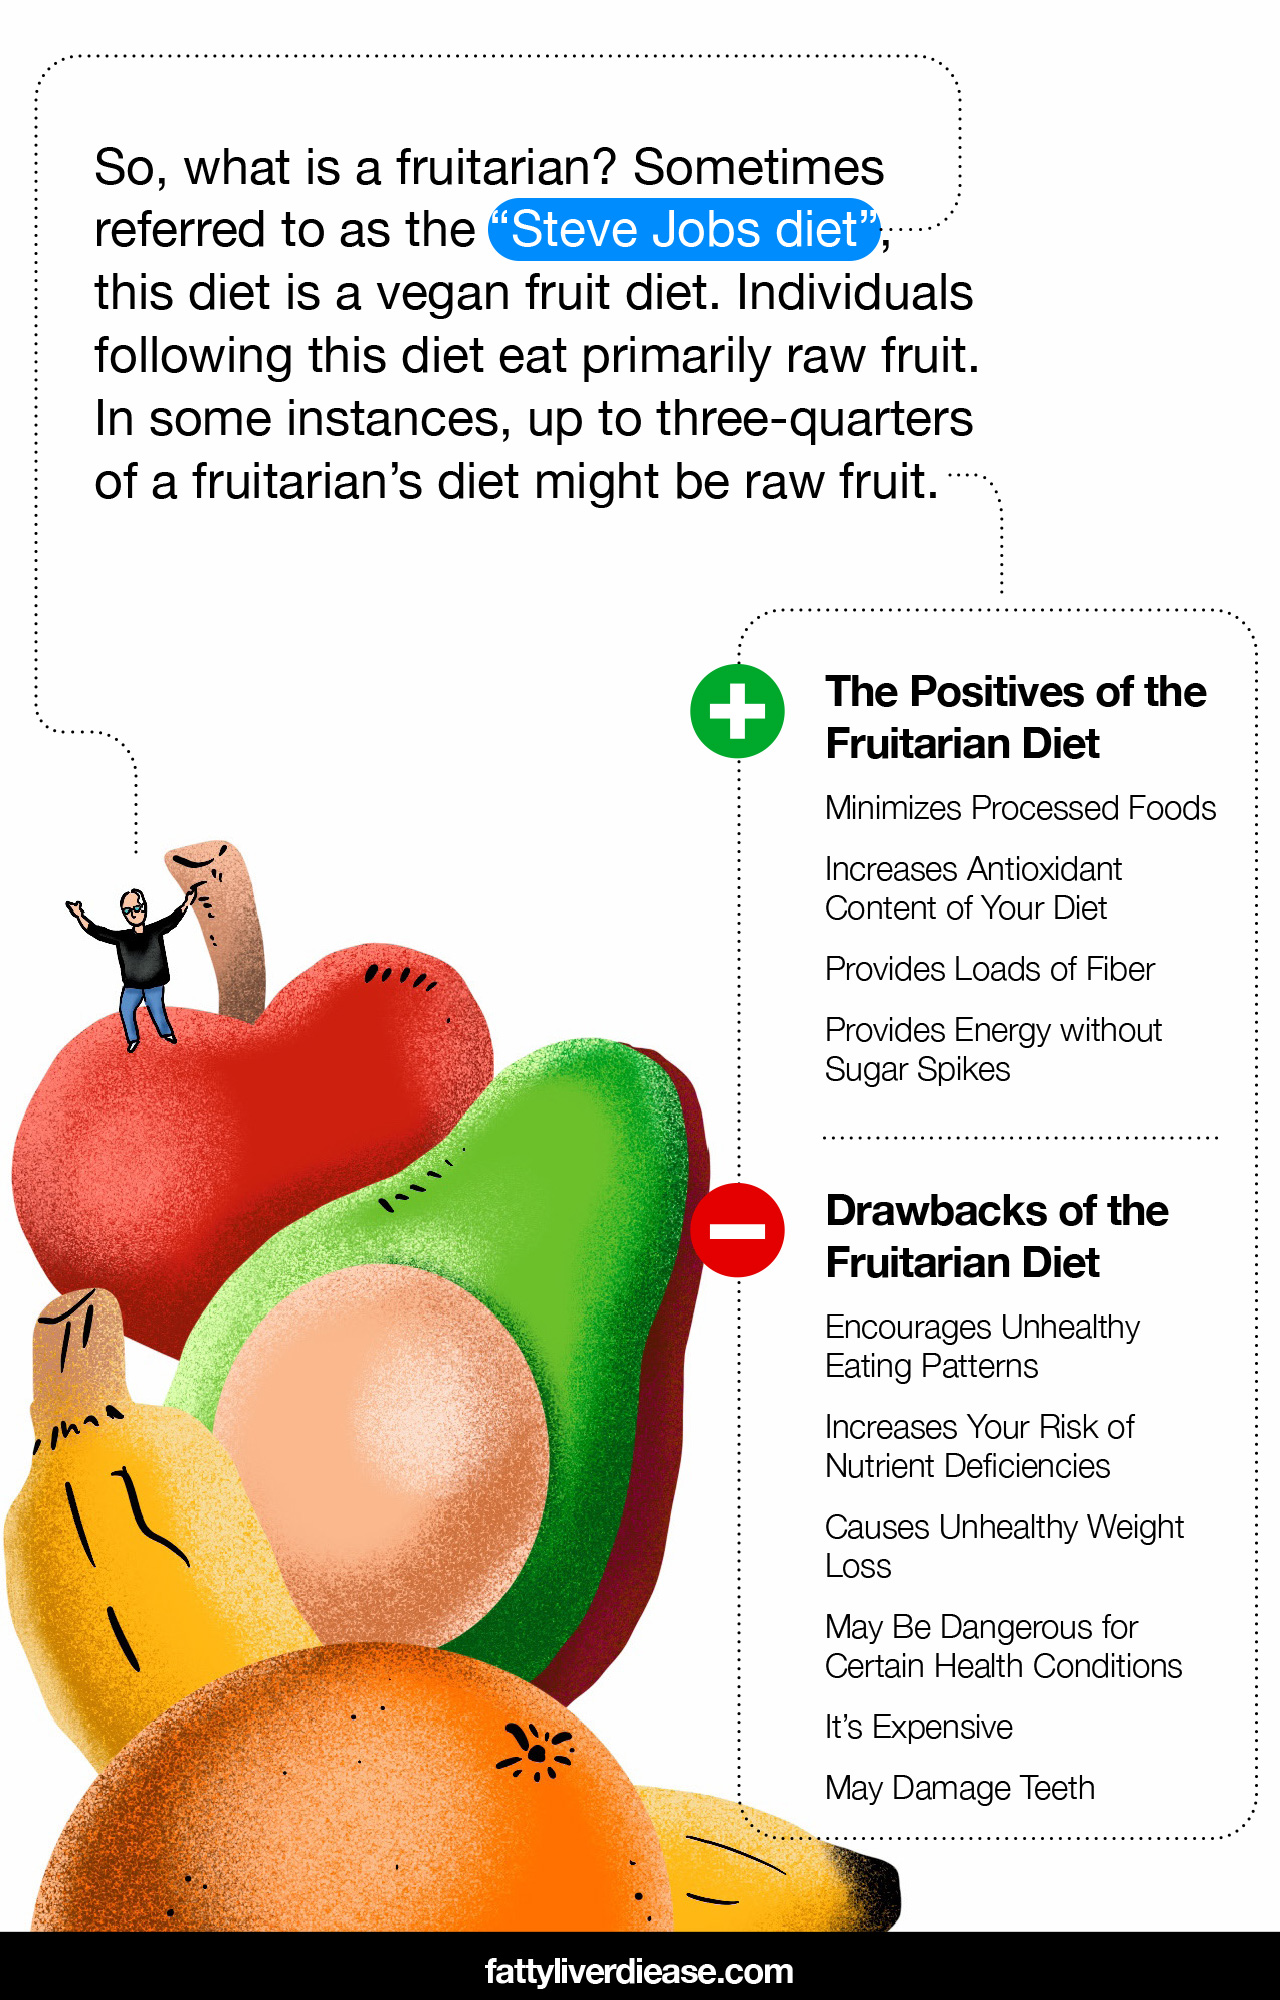 The Positives of the Fruitarian Diet